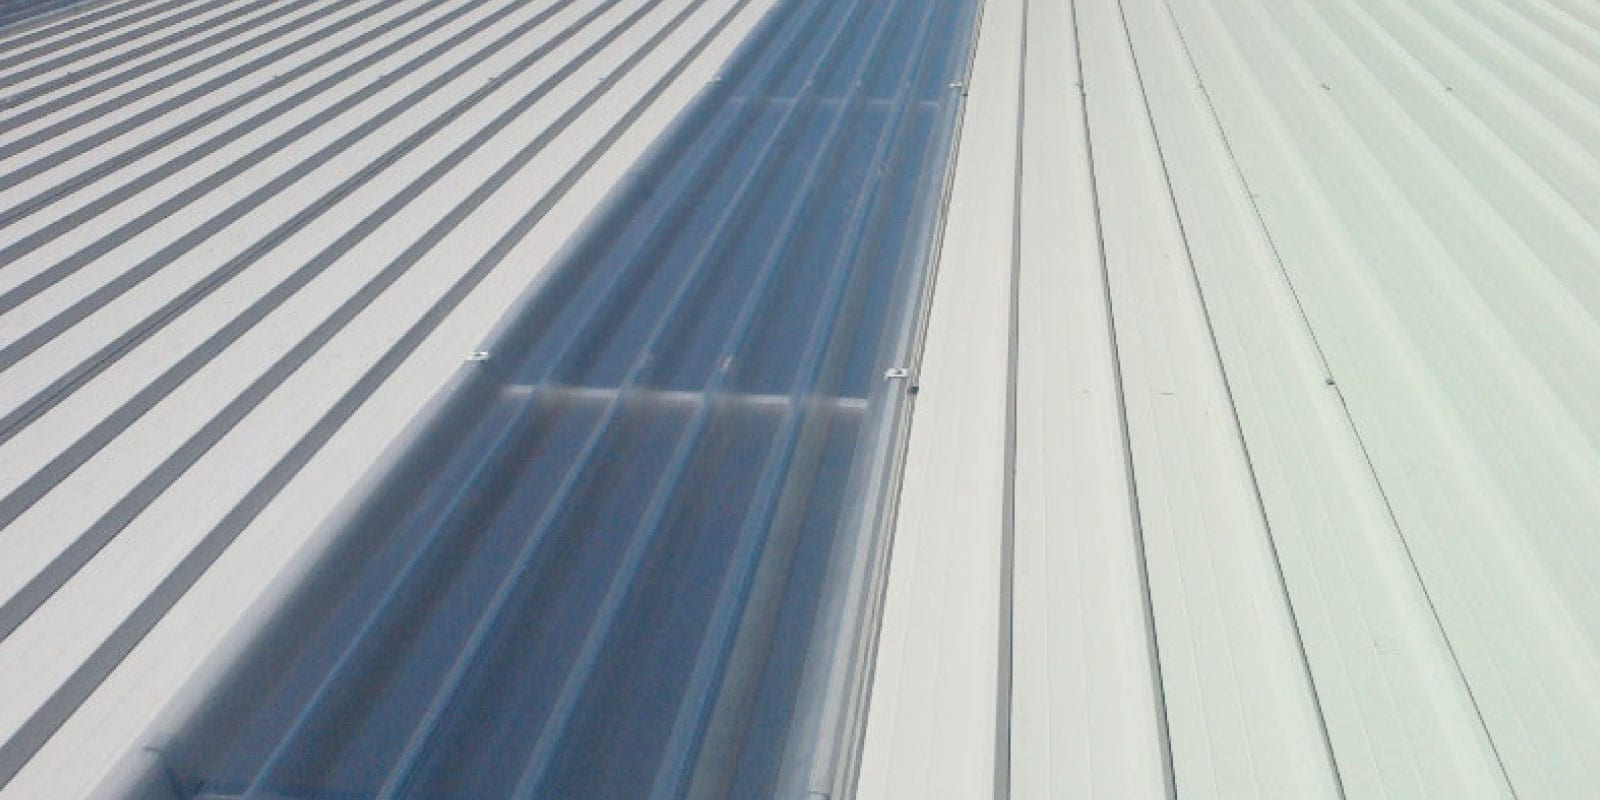 buy fibreglass sheets industrial roofing sydney nsw